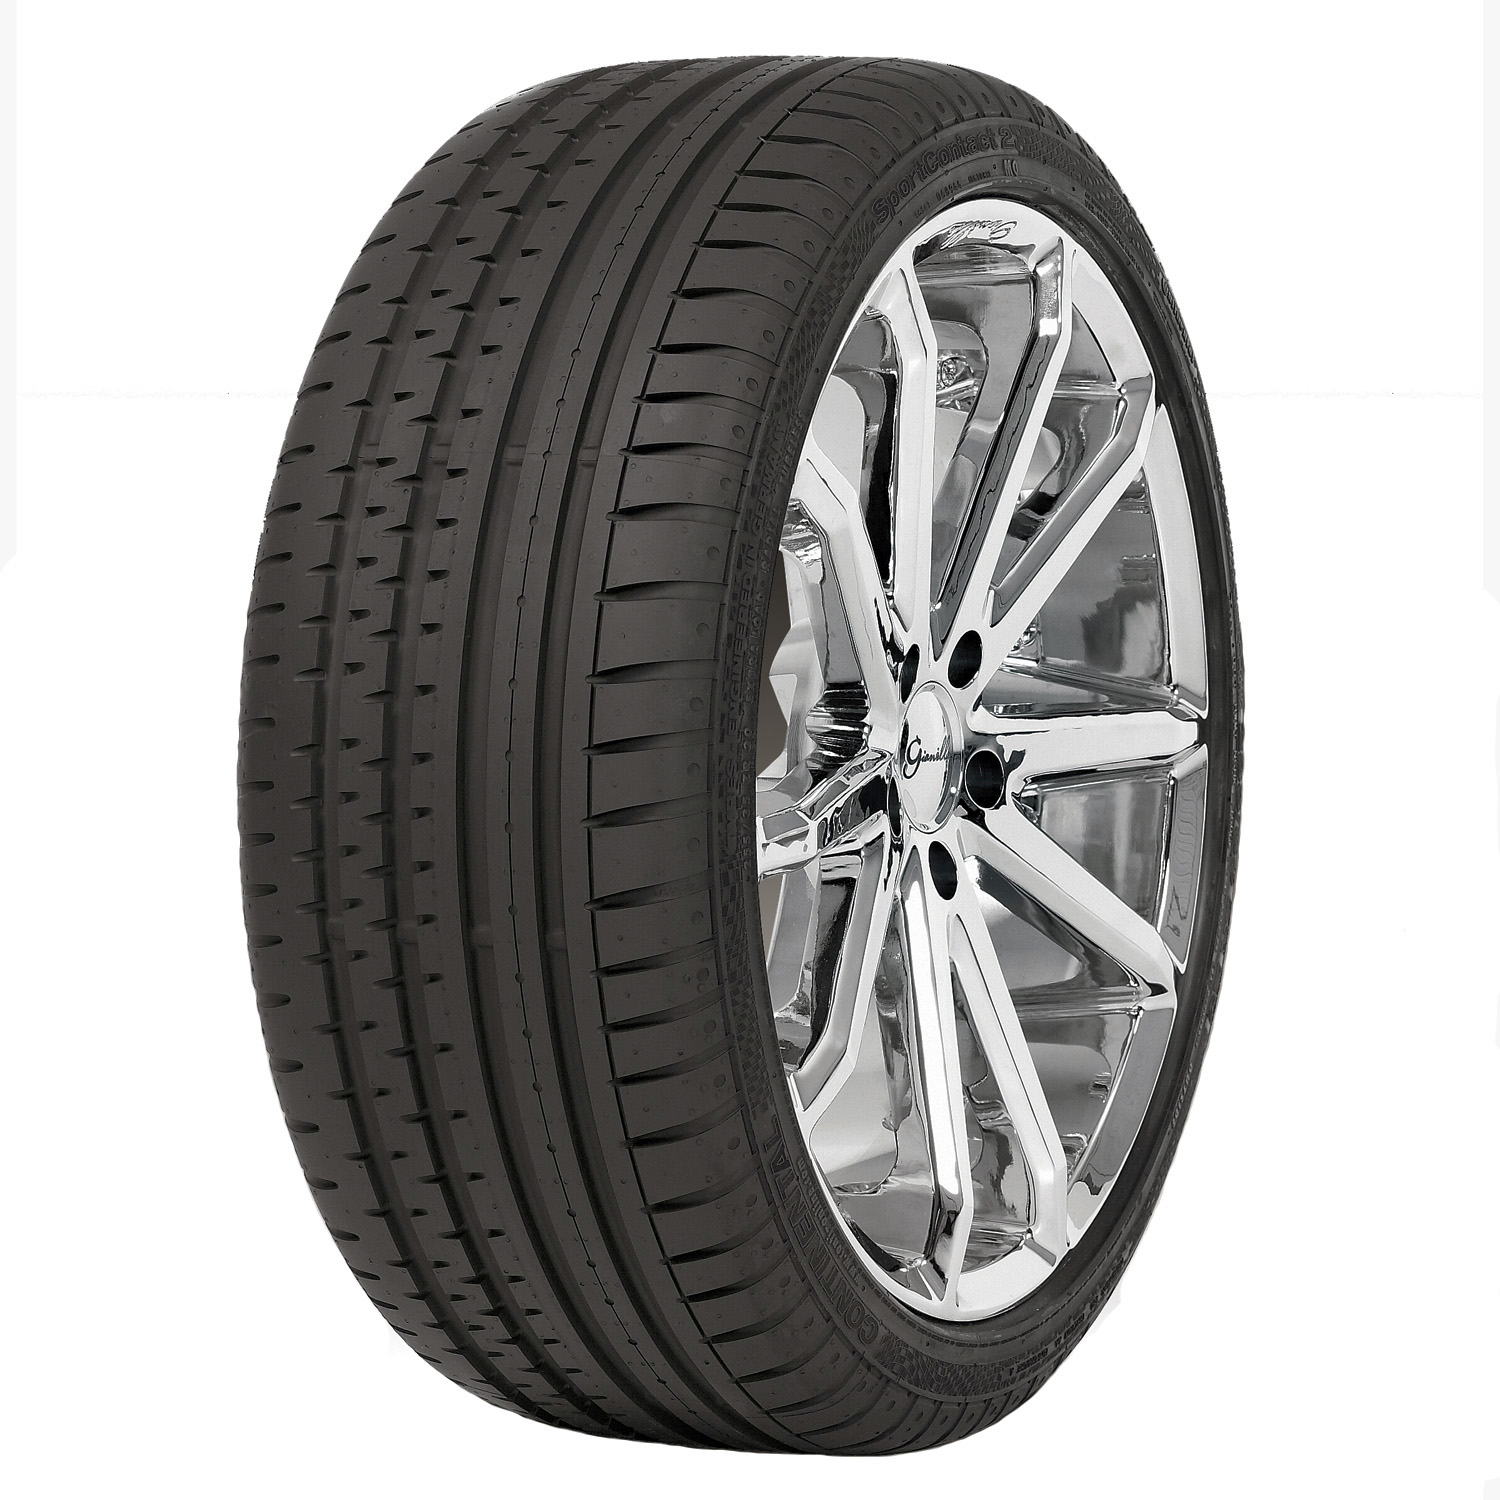 Gomme Nuove Continental 265/40 R20 104Y SP.CONTACT 3 AO XL pneumatici nuovi Estivo